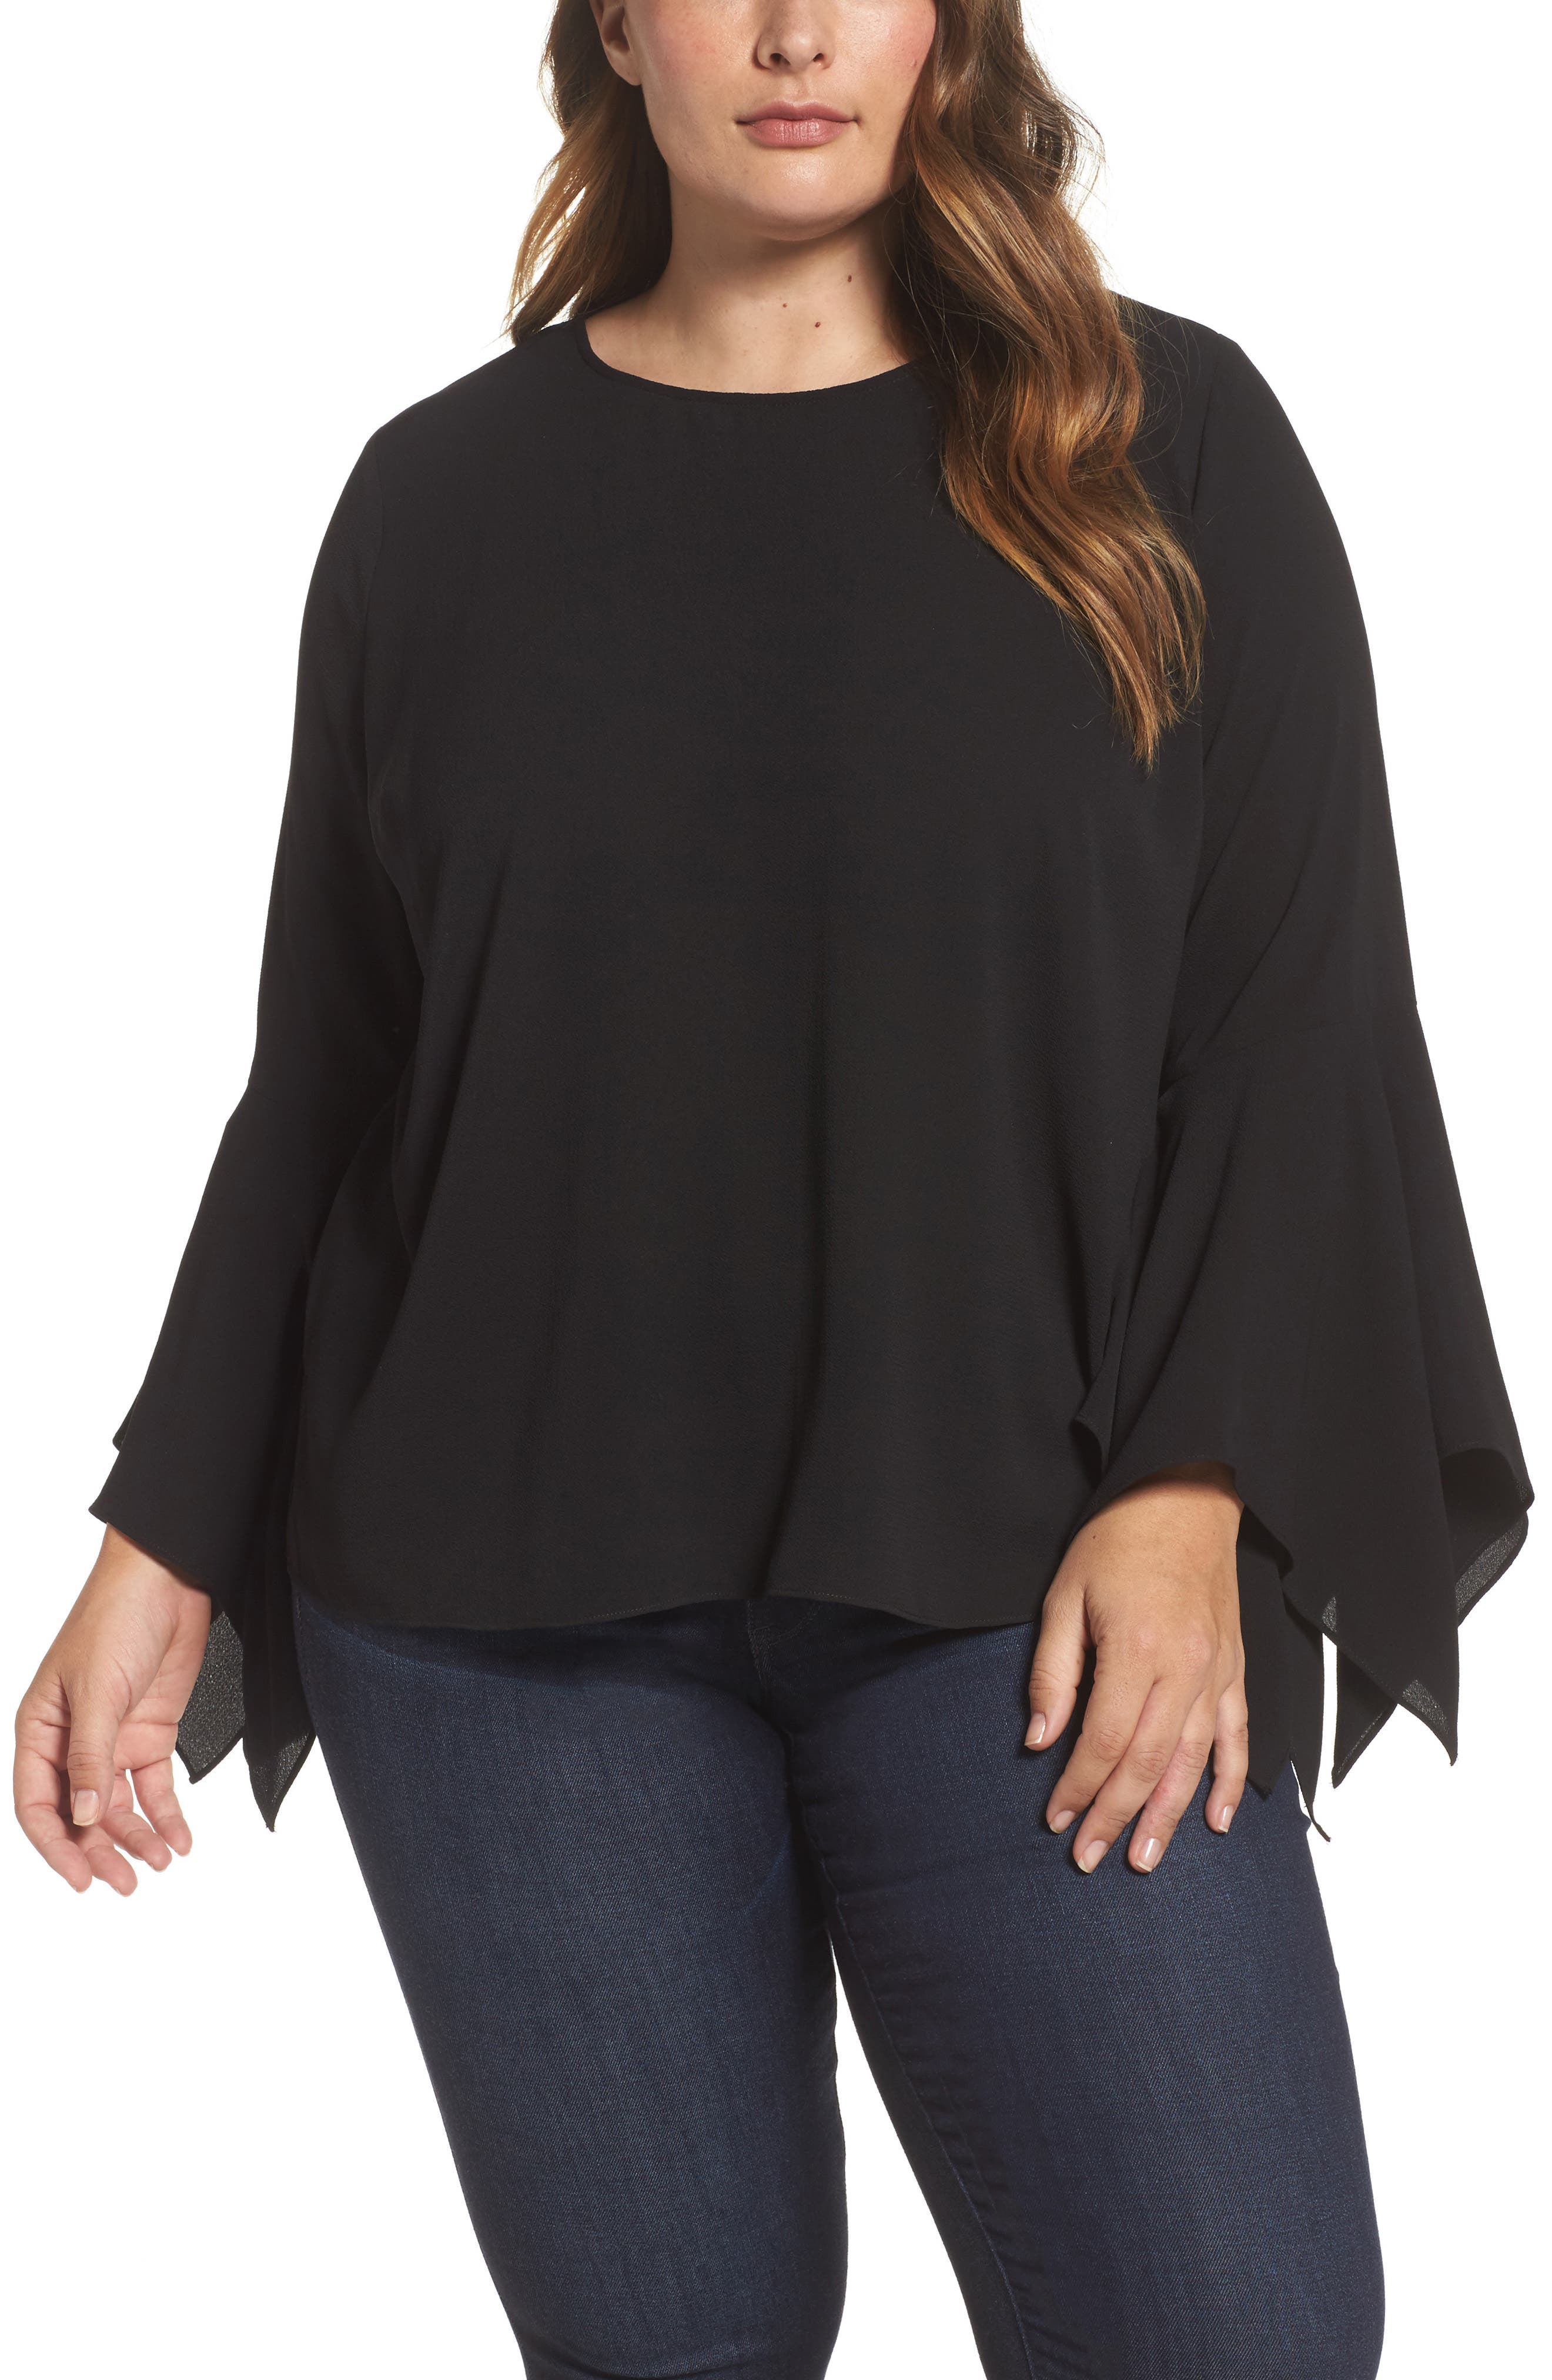 Alternate Image 1 Selected - Vince Camuto Handkerchief Sleeve Blouse (Plus Size)